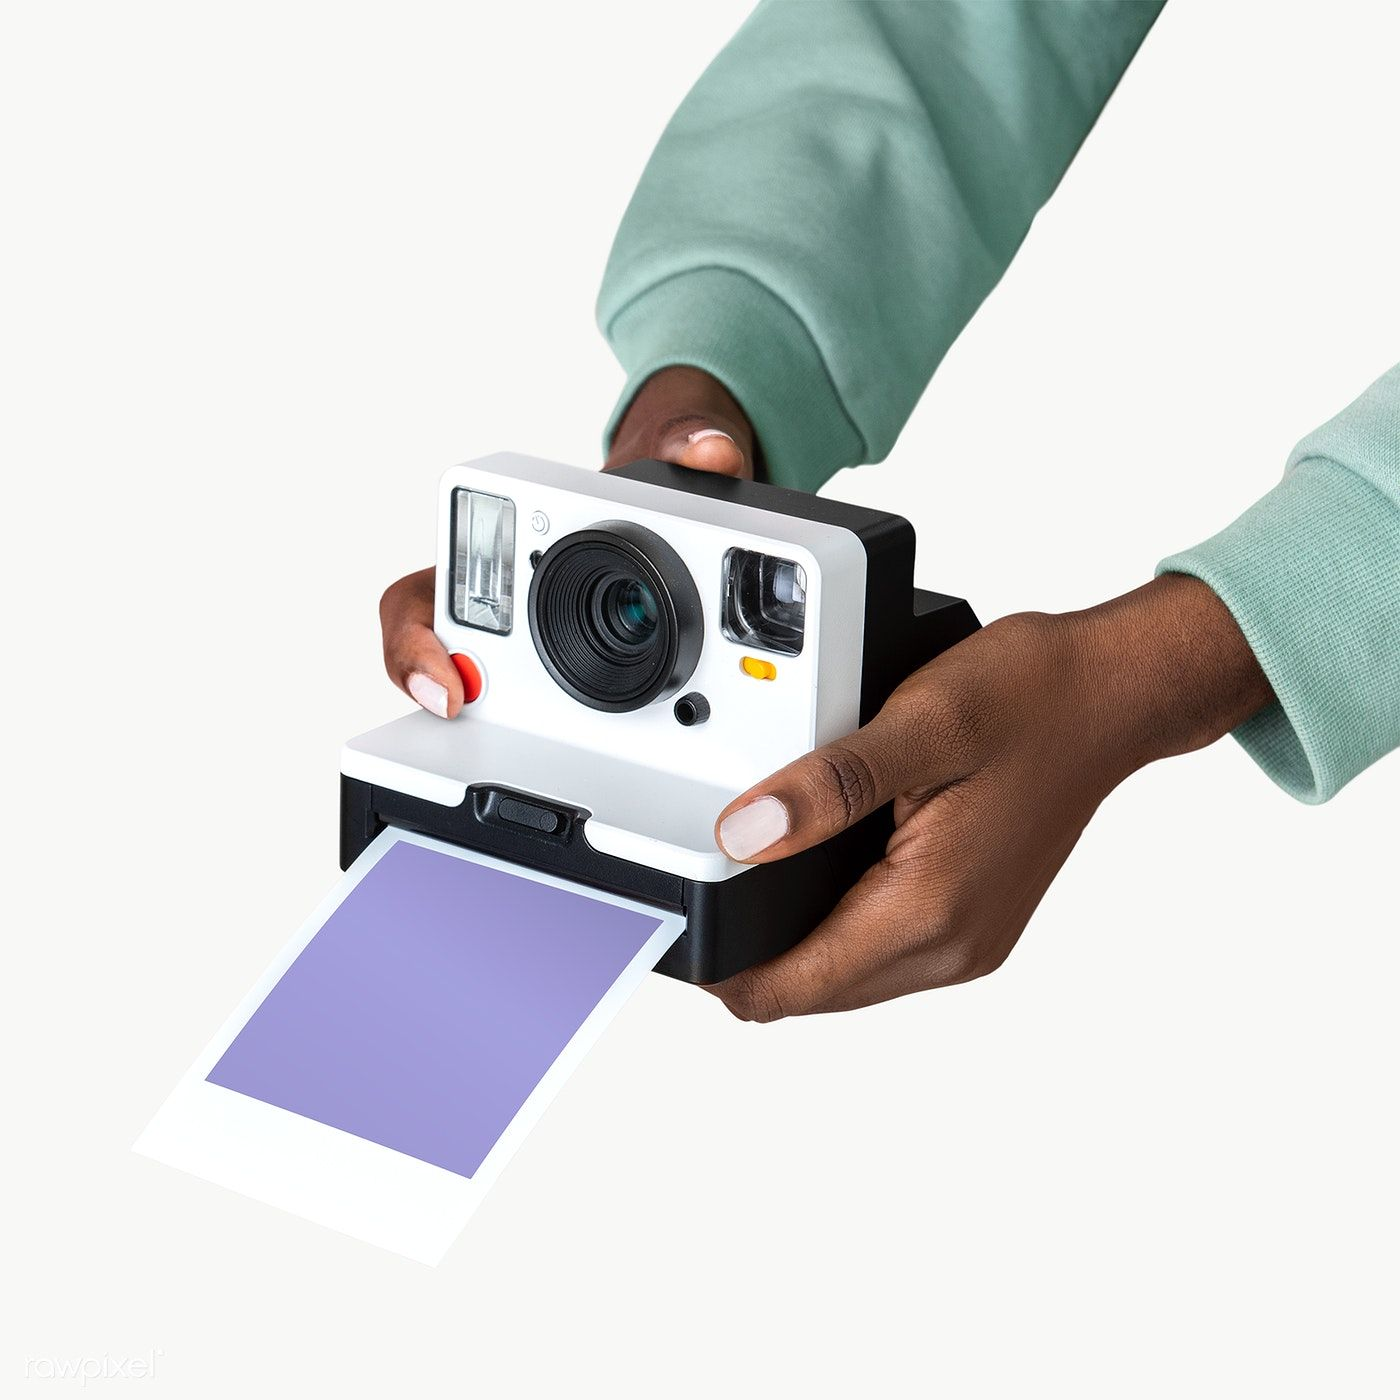 Hands Holding An Instant Camera Transparent Png Premium Image By Rawpixel Com Teddy Rawpixel Instant Camera Instant Photos Polaroid Instant Camera